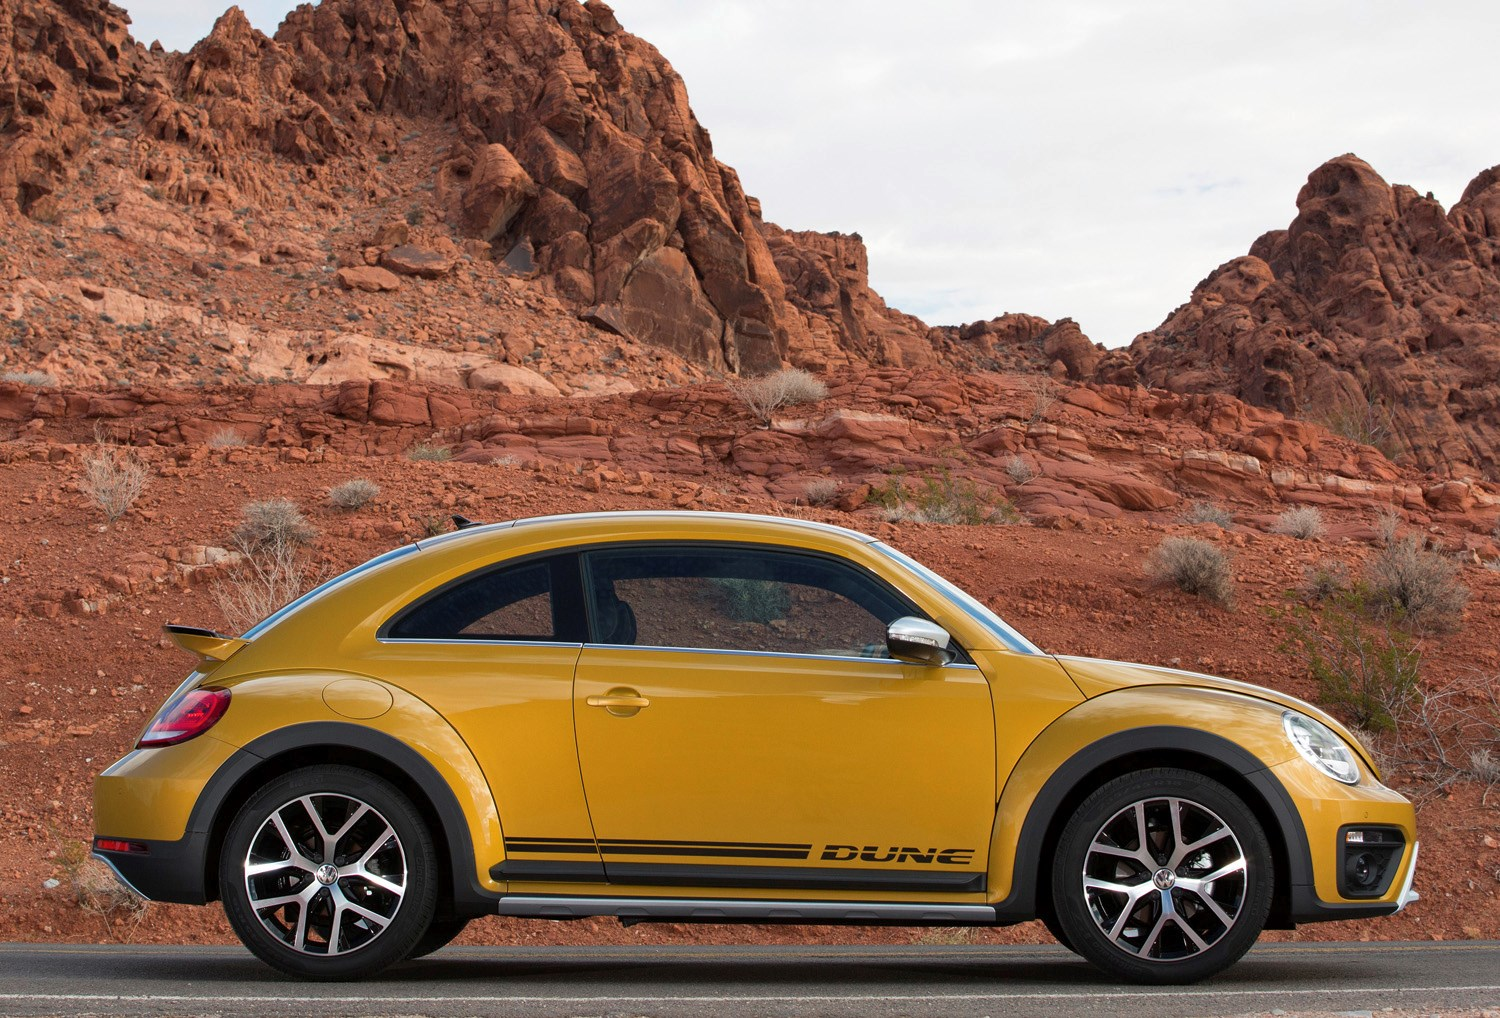 Ac moreover Vw Dune Buggy additionally Seitenaufkleber De Wz further Beetle Dune moreover Tomato Vw Beetle Car With Legs. on green vw beetle